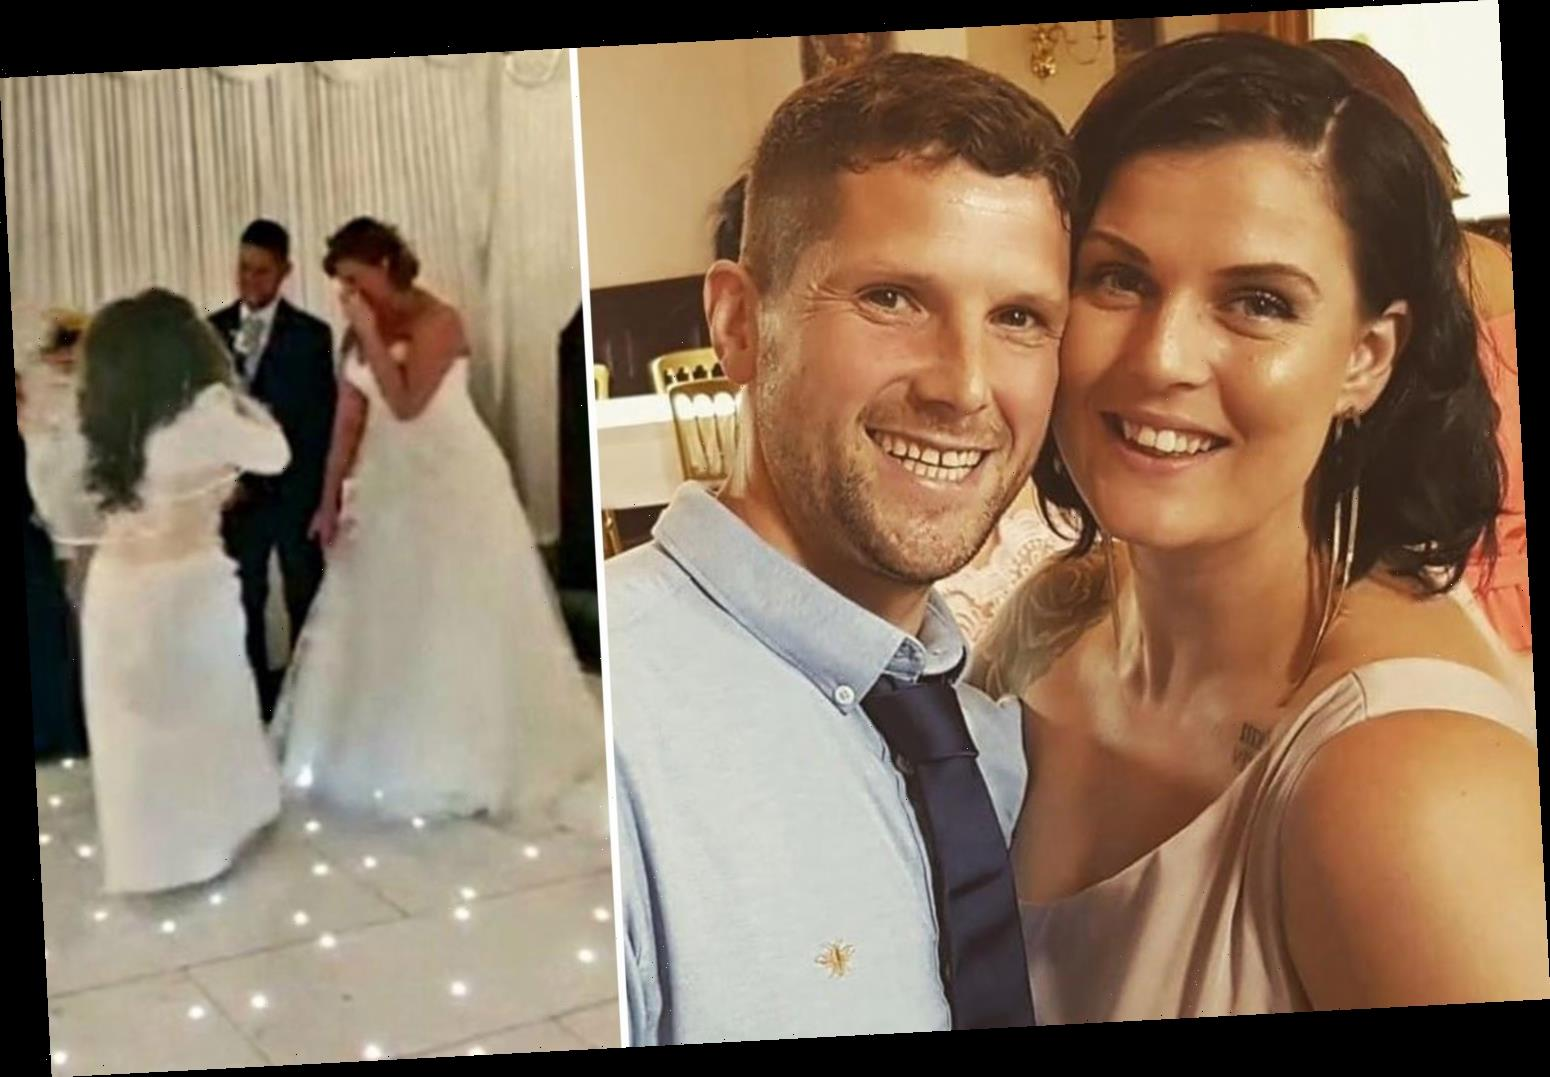 Groom's 'crazy ex' crashes wedding wearing BRIDAL GOWN screaming 'it should have been me' – but all's not as it seems – The Sun